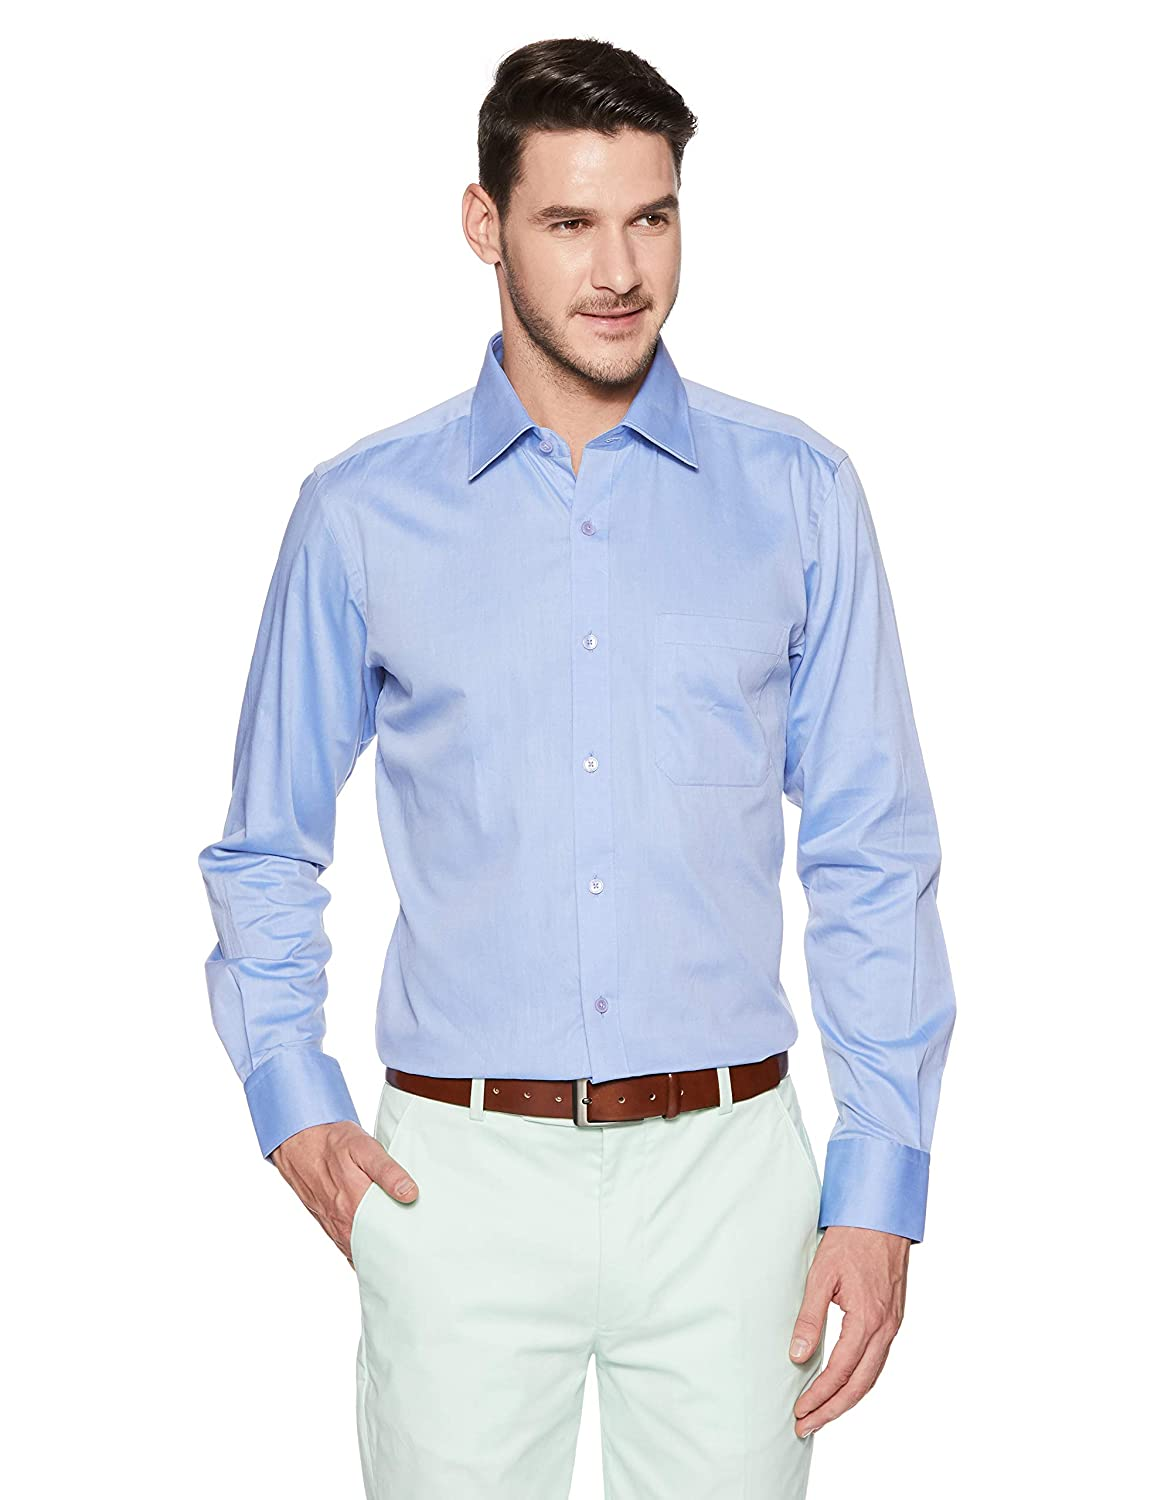 blue shirts for civil services and upsc